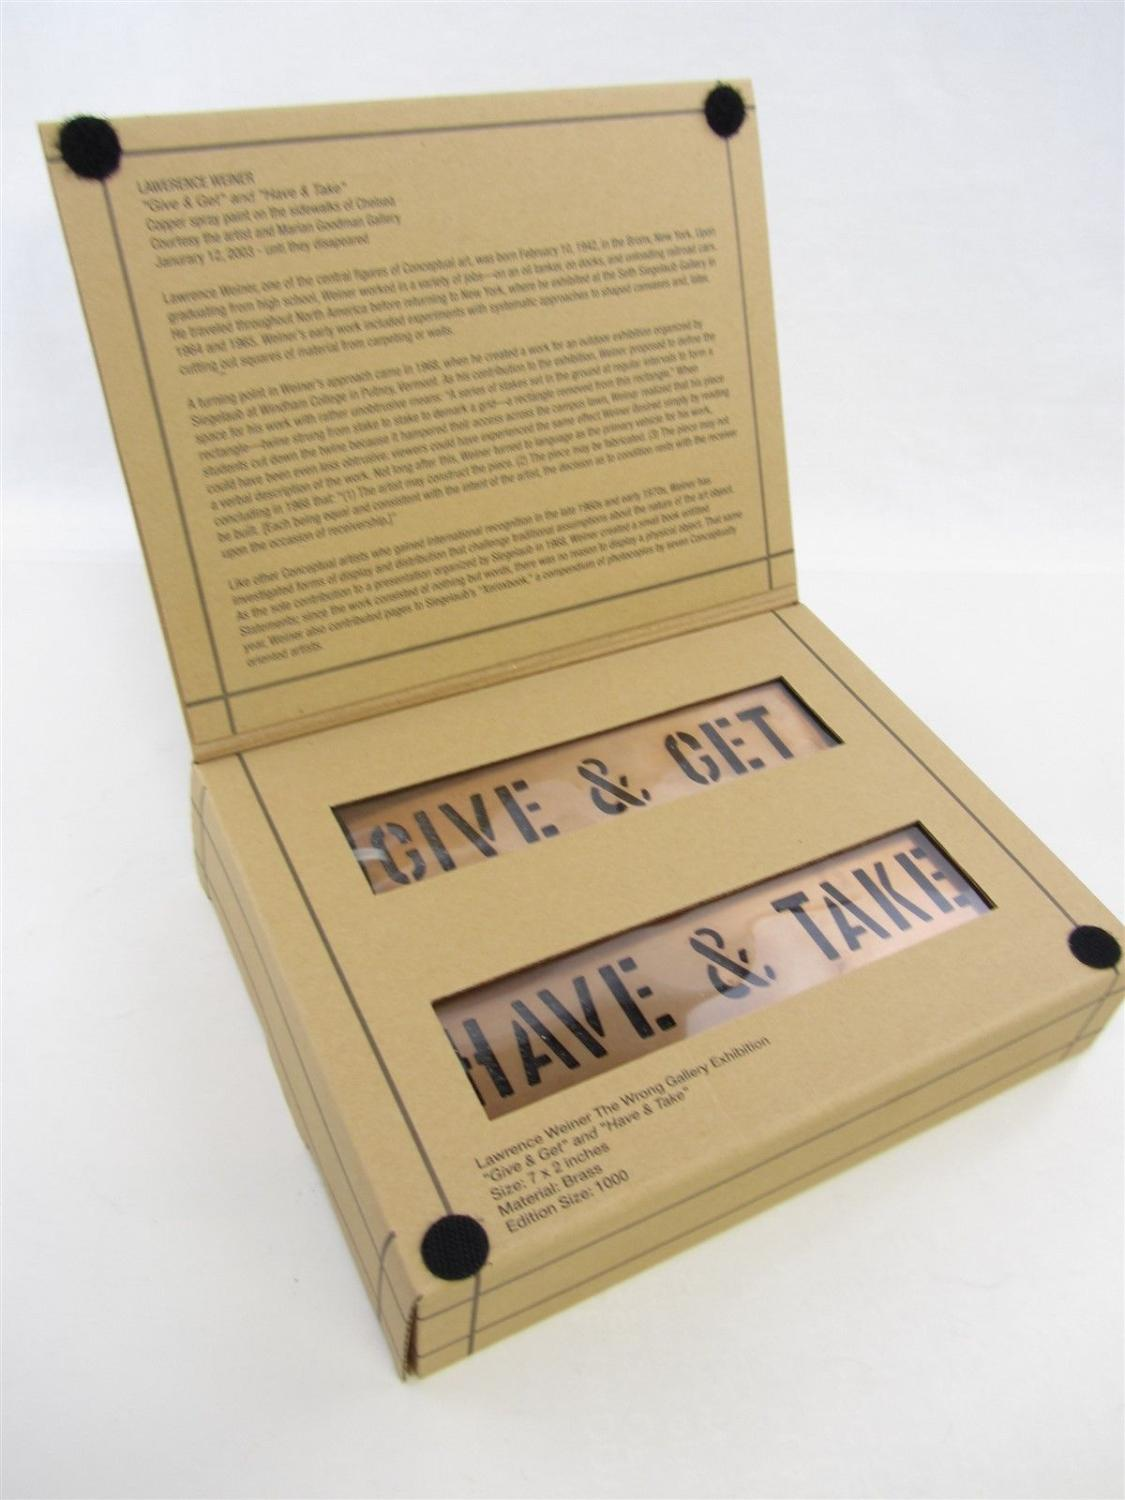 GIVE AND GET BRASS STENCIL SET BY LAWRENCE WEINER LIMITED EDITION HAVE AND TAKE